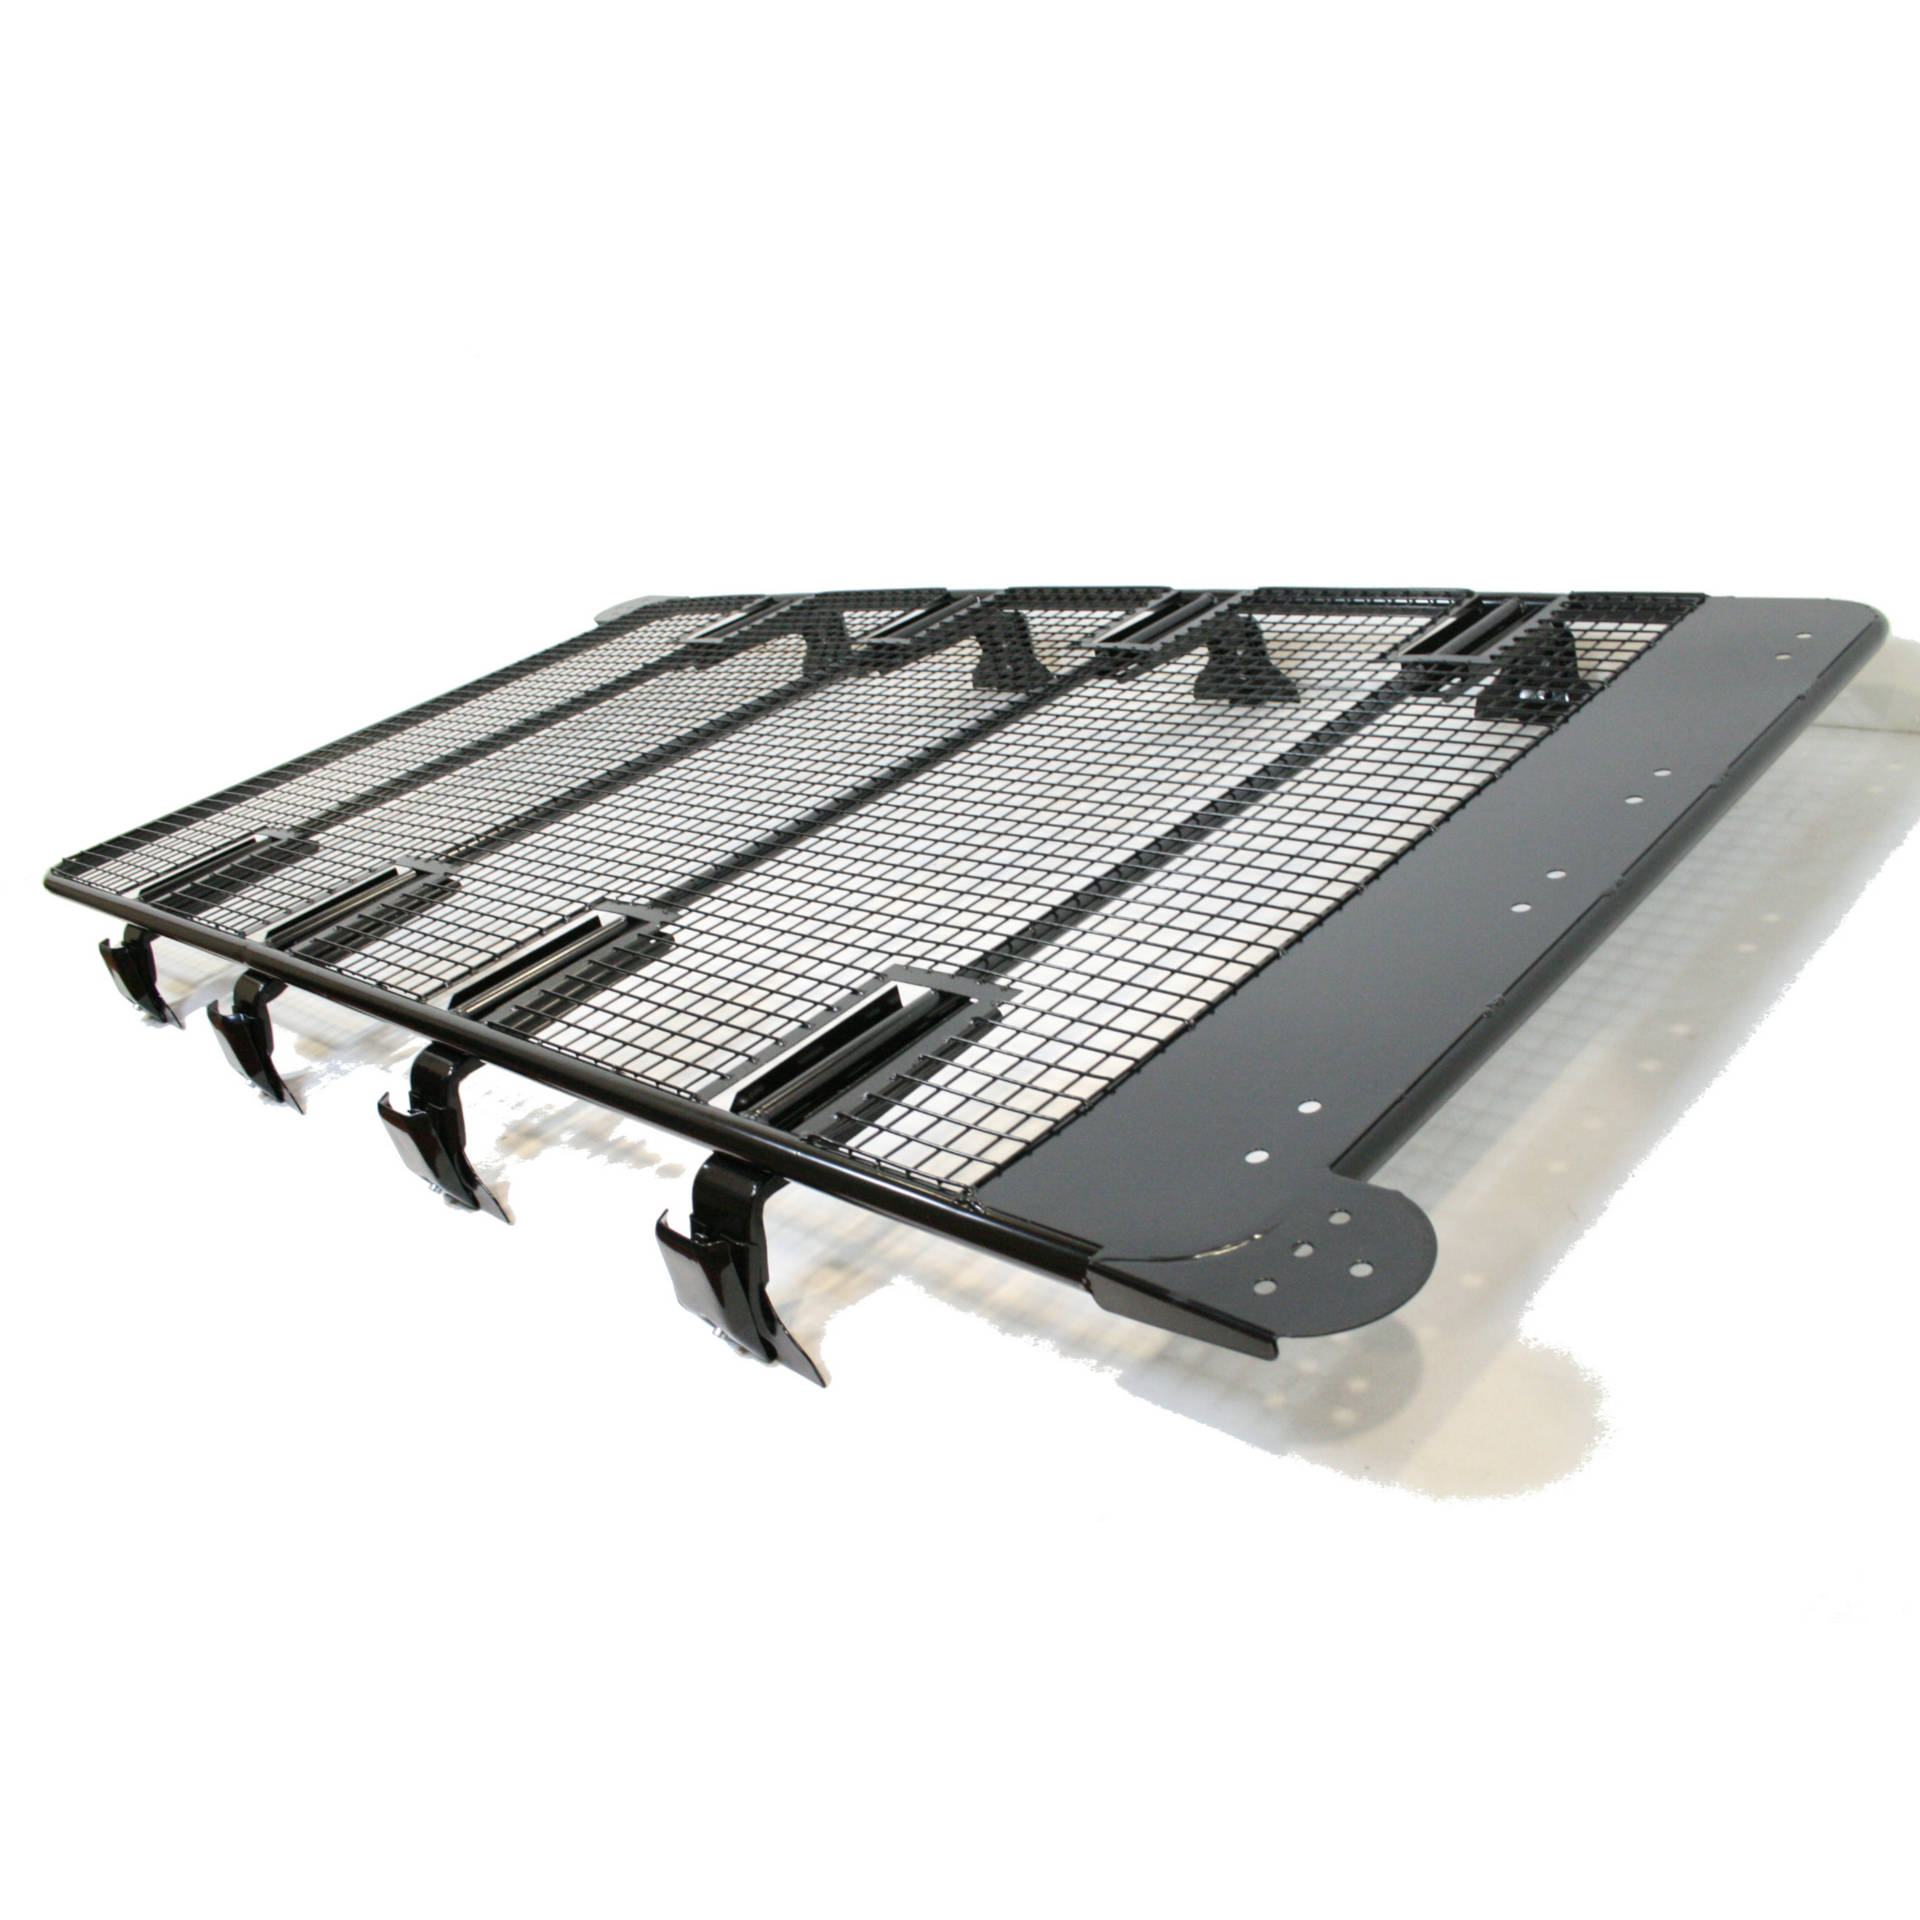 Direct4x4 Accessories UK | Expedition Flat Roof Rack